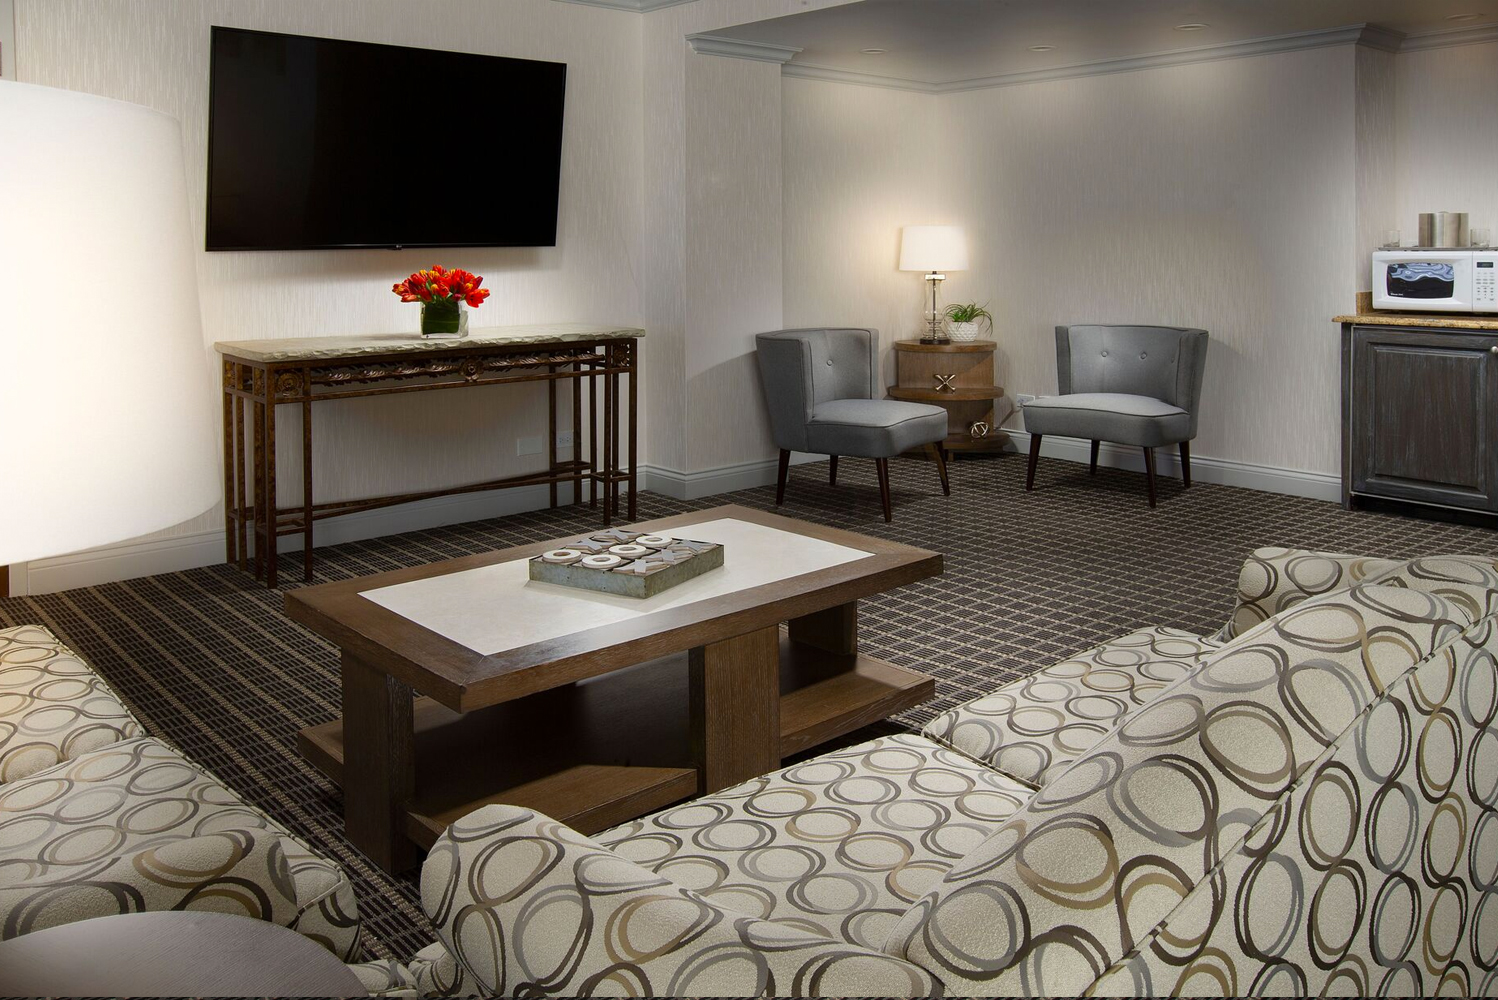 For the renovation, changes were made to the property's 20,000 square feet of flexible function space and 249 guestrooms.